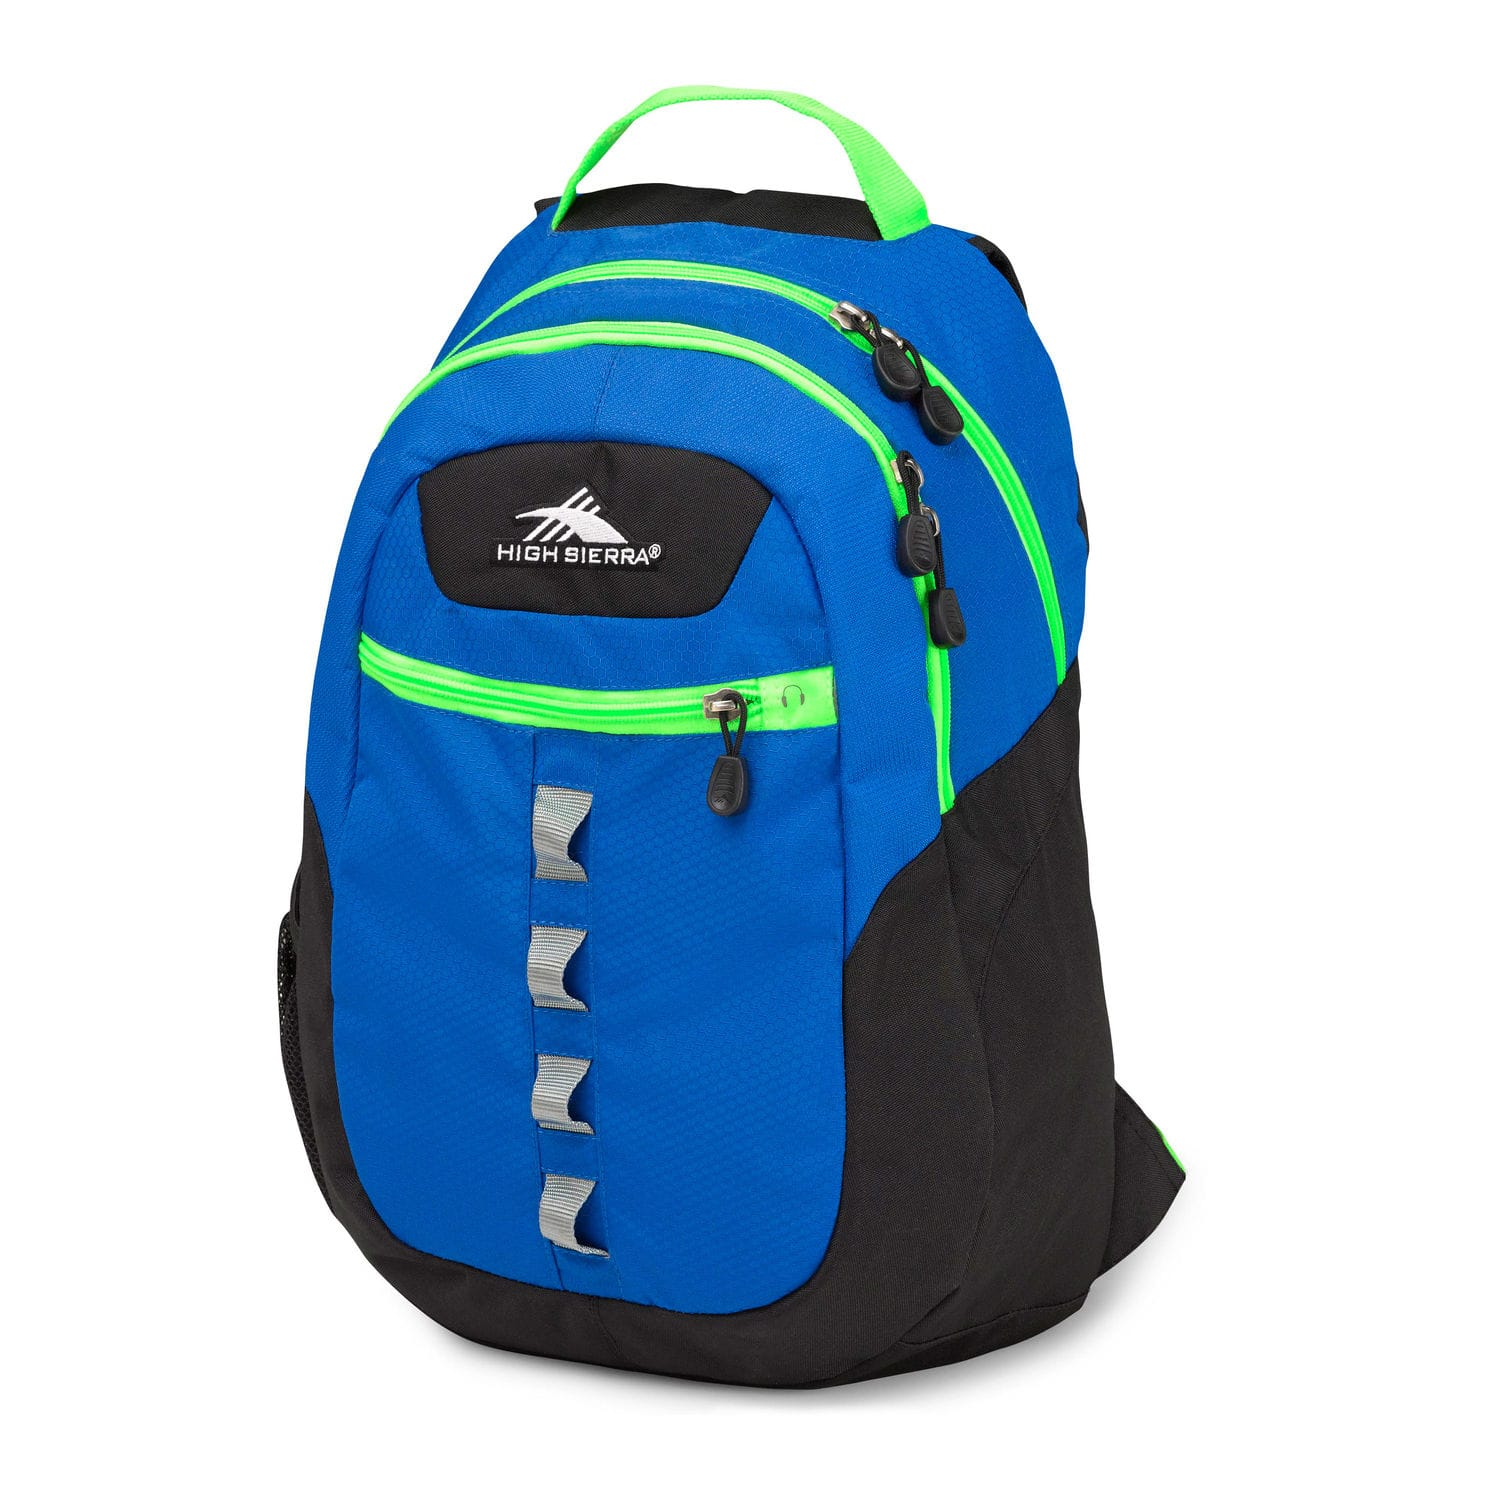 Backpack Blowout sale HIGH SIERRA as low as $15 + shipping